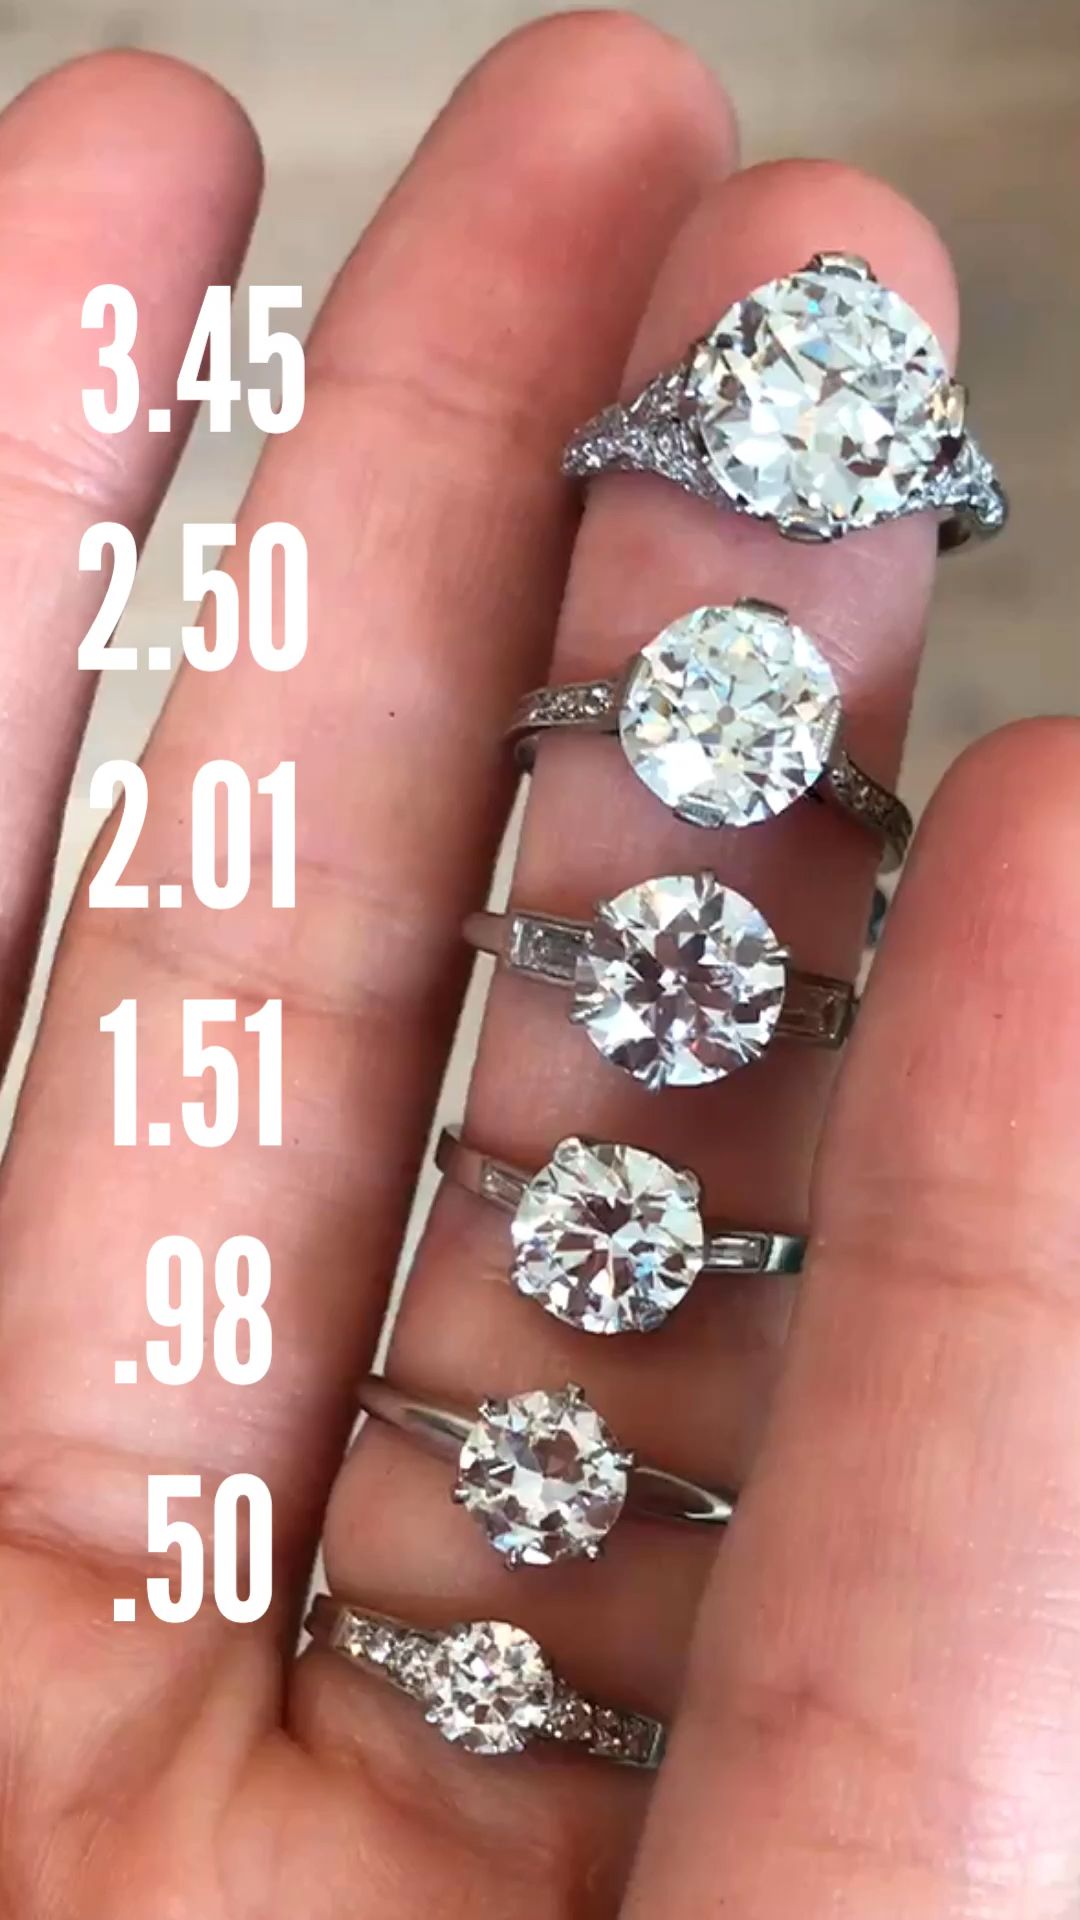 Vintage diamond carat size on a hand featuring Erstwhile